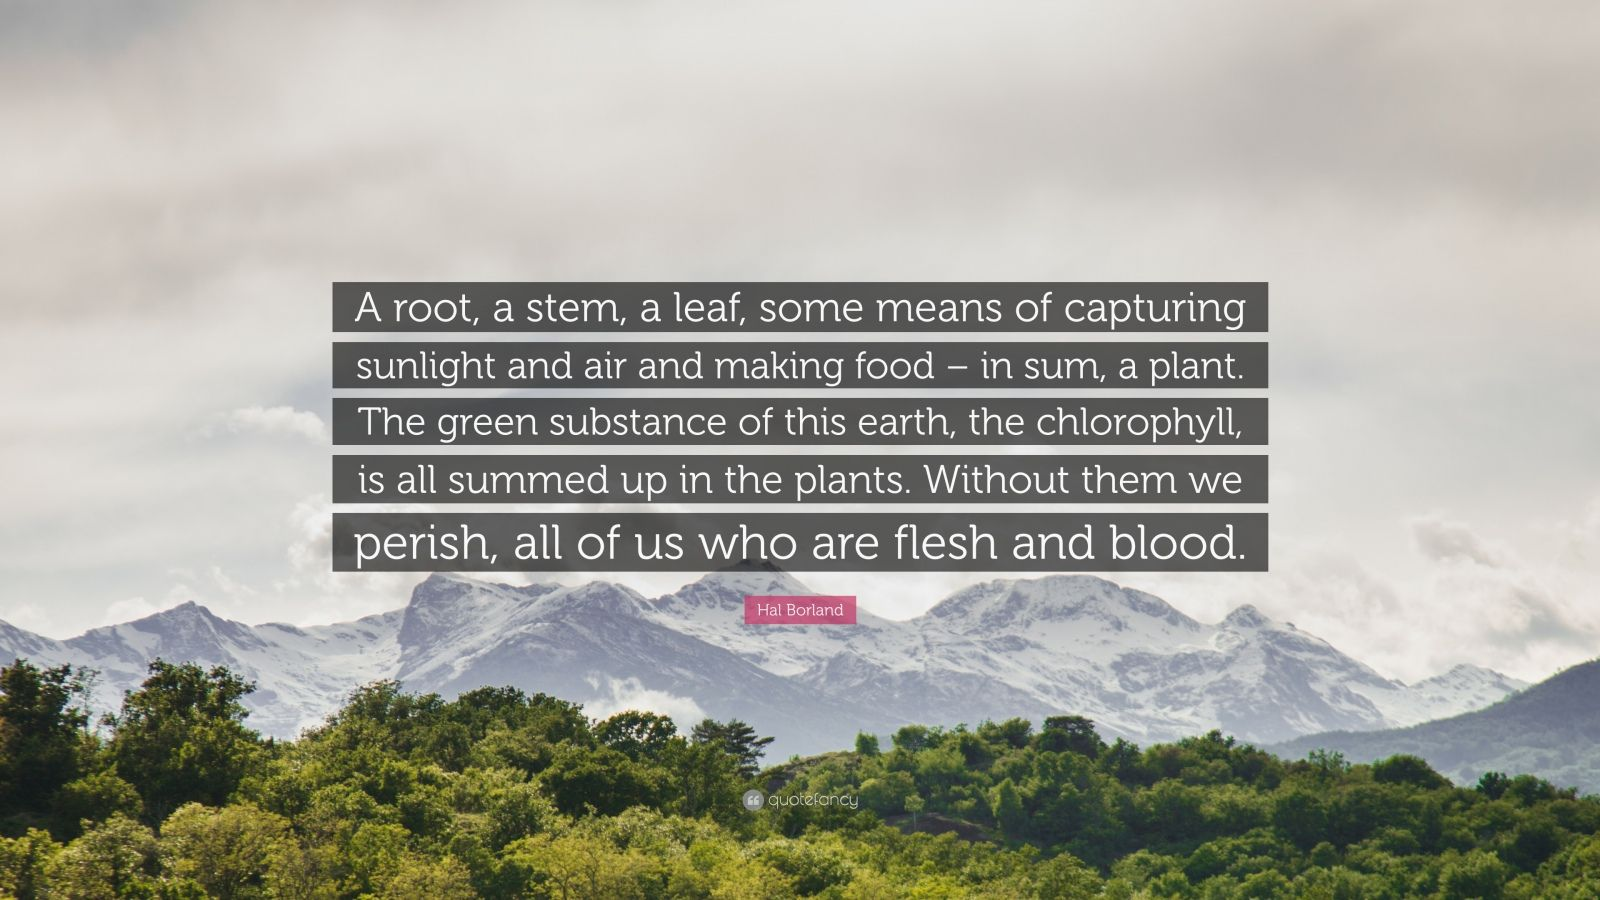 """Hal Borland Quote: """"A root, a stem, a leaf, some means of capturing sunlight and air and making food – in sum, a plant. The green substance of this earth, the chlorophyll, is all summed up in the plants. Without them we perish, all of us who are flesh and blood."""""""